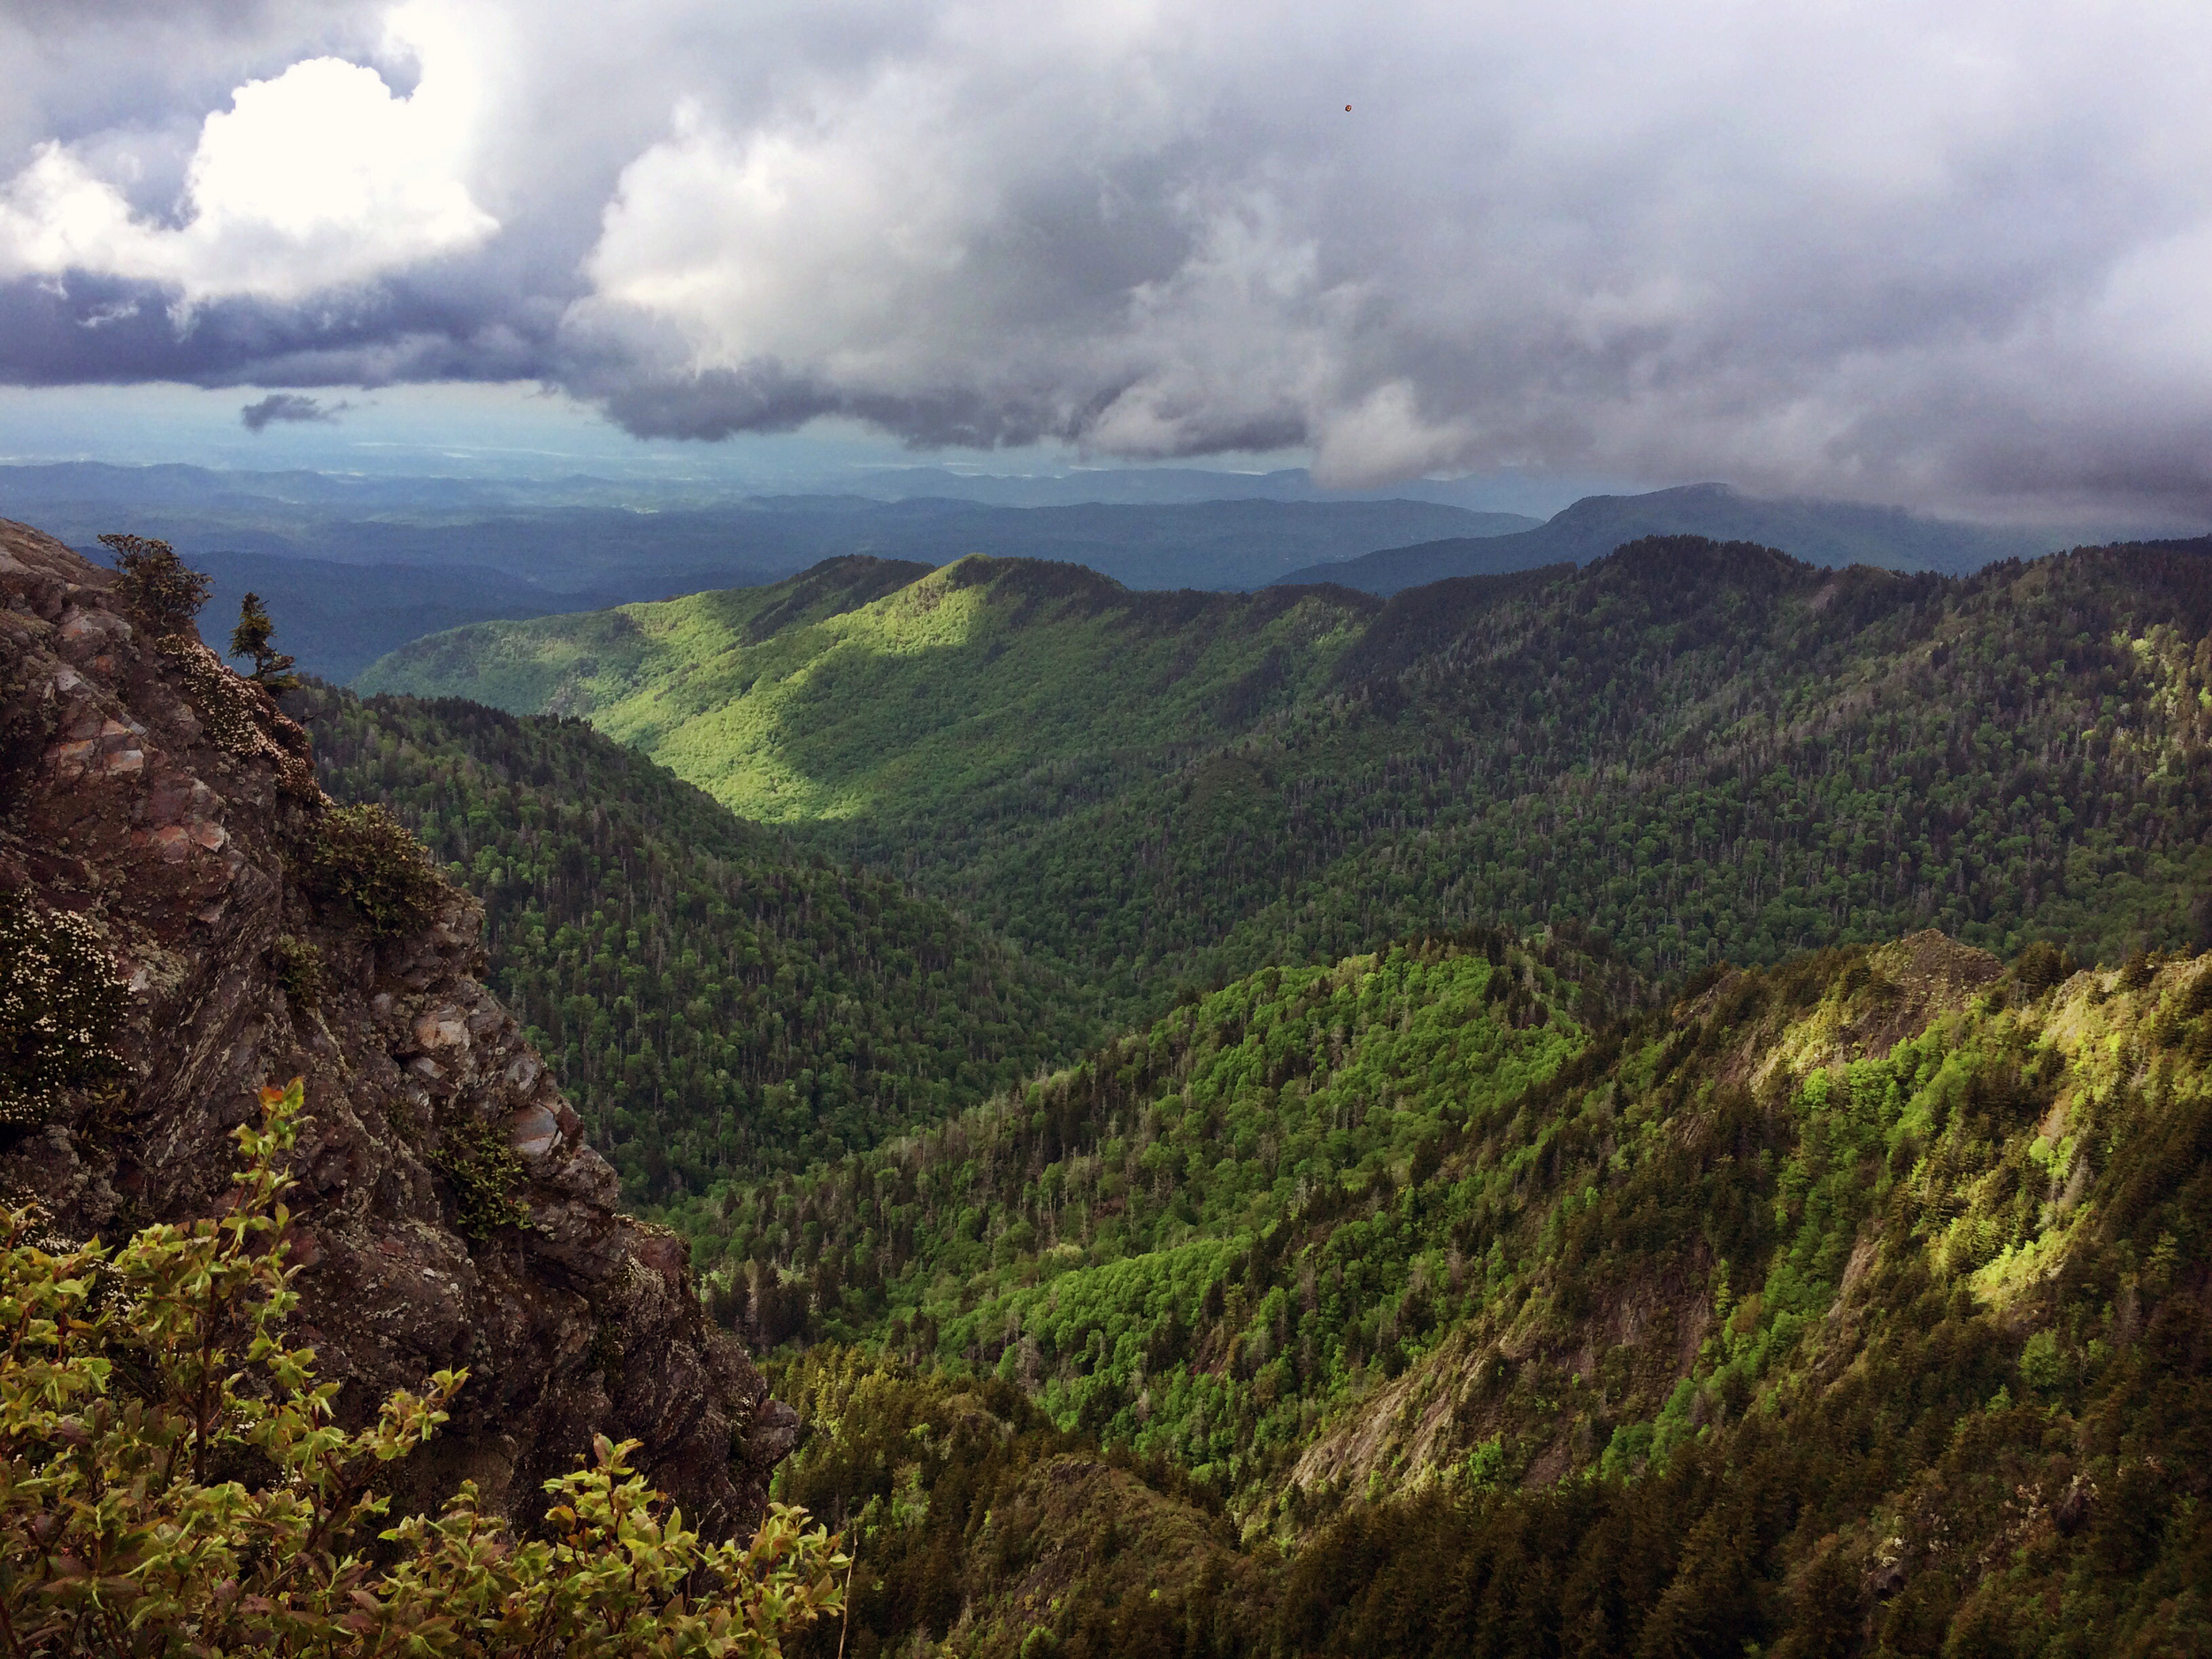 blindappying_smokymountains_hike1.jpg